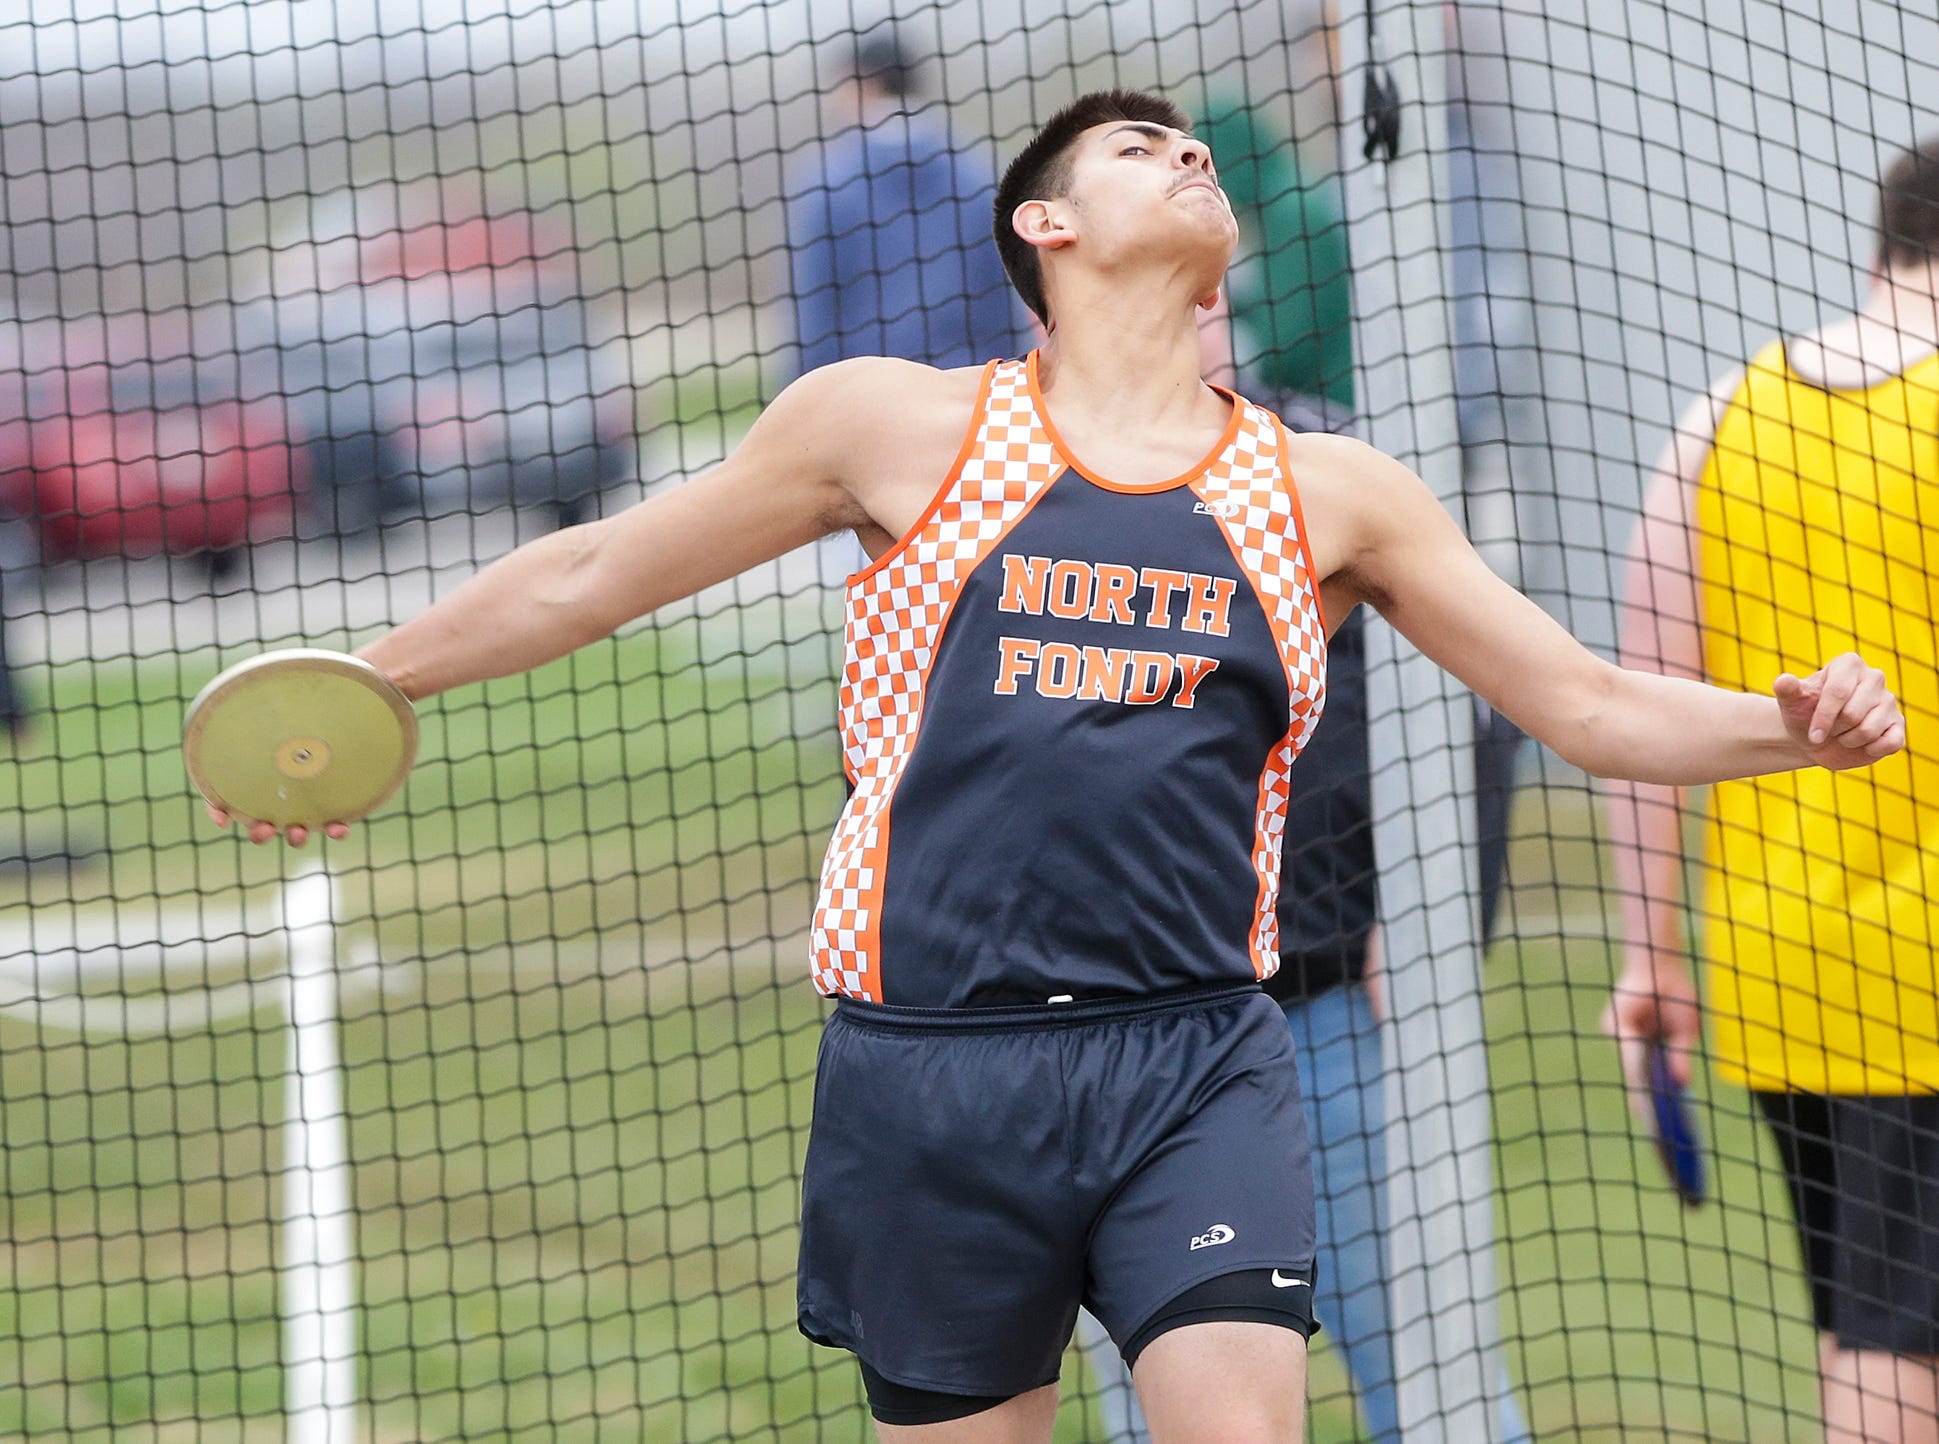 Alan Ayala of North Fond du Lac High School competes in the discus throw Friday, May 3, 2019 at the Waupun High School Invitational track and field meet. Doug Raflik/USA TODAY NETWORK-Wisconsin